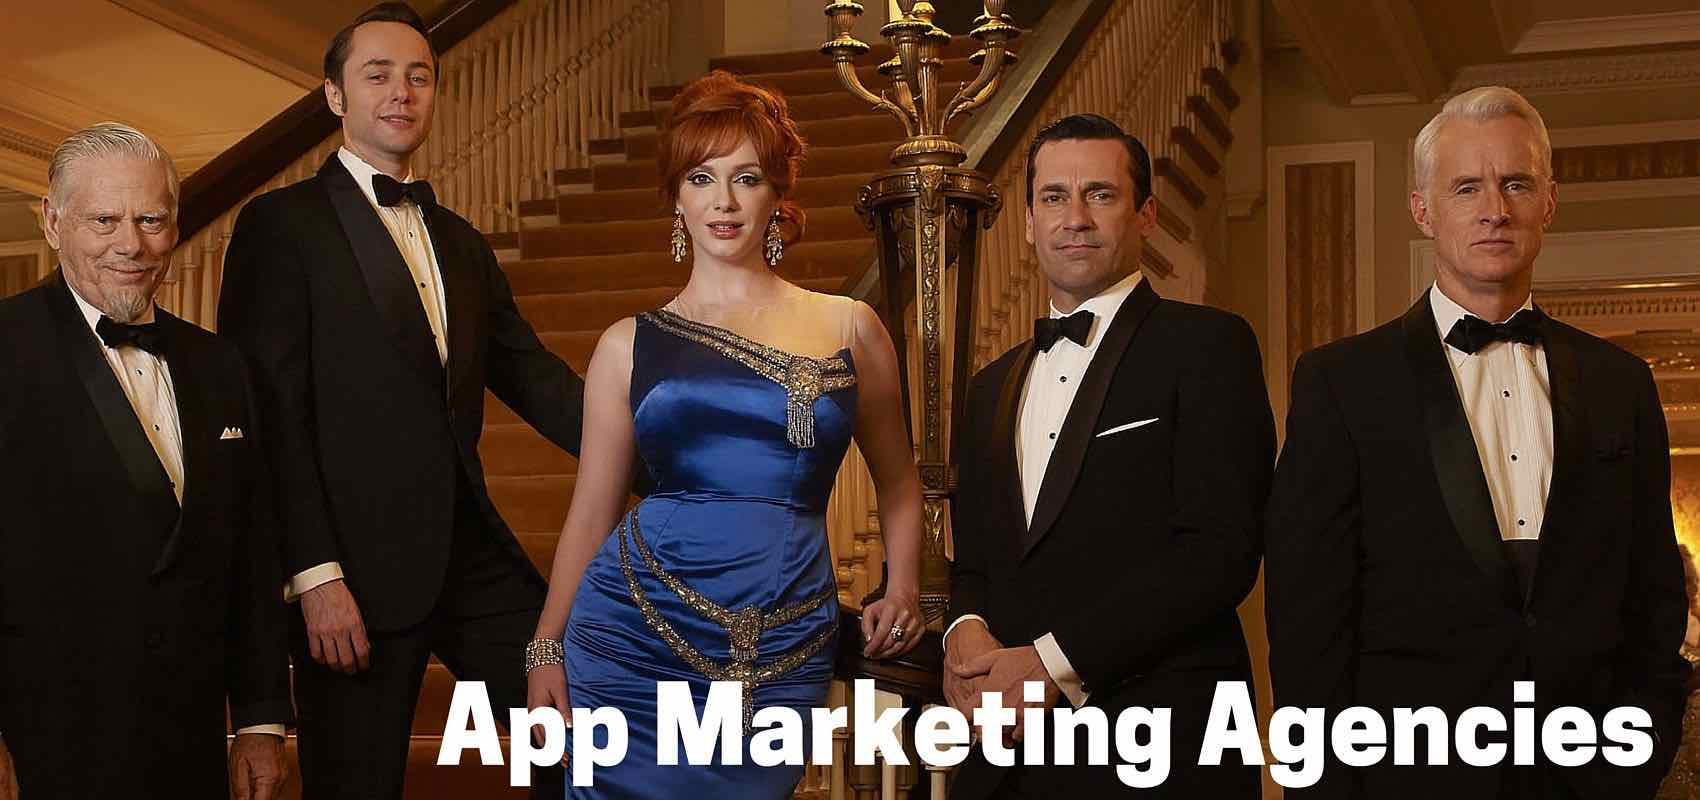 App Marketing Agencies